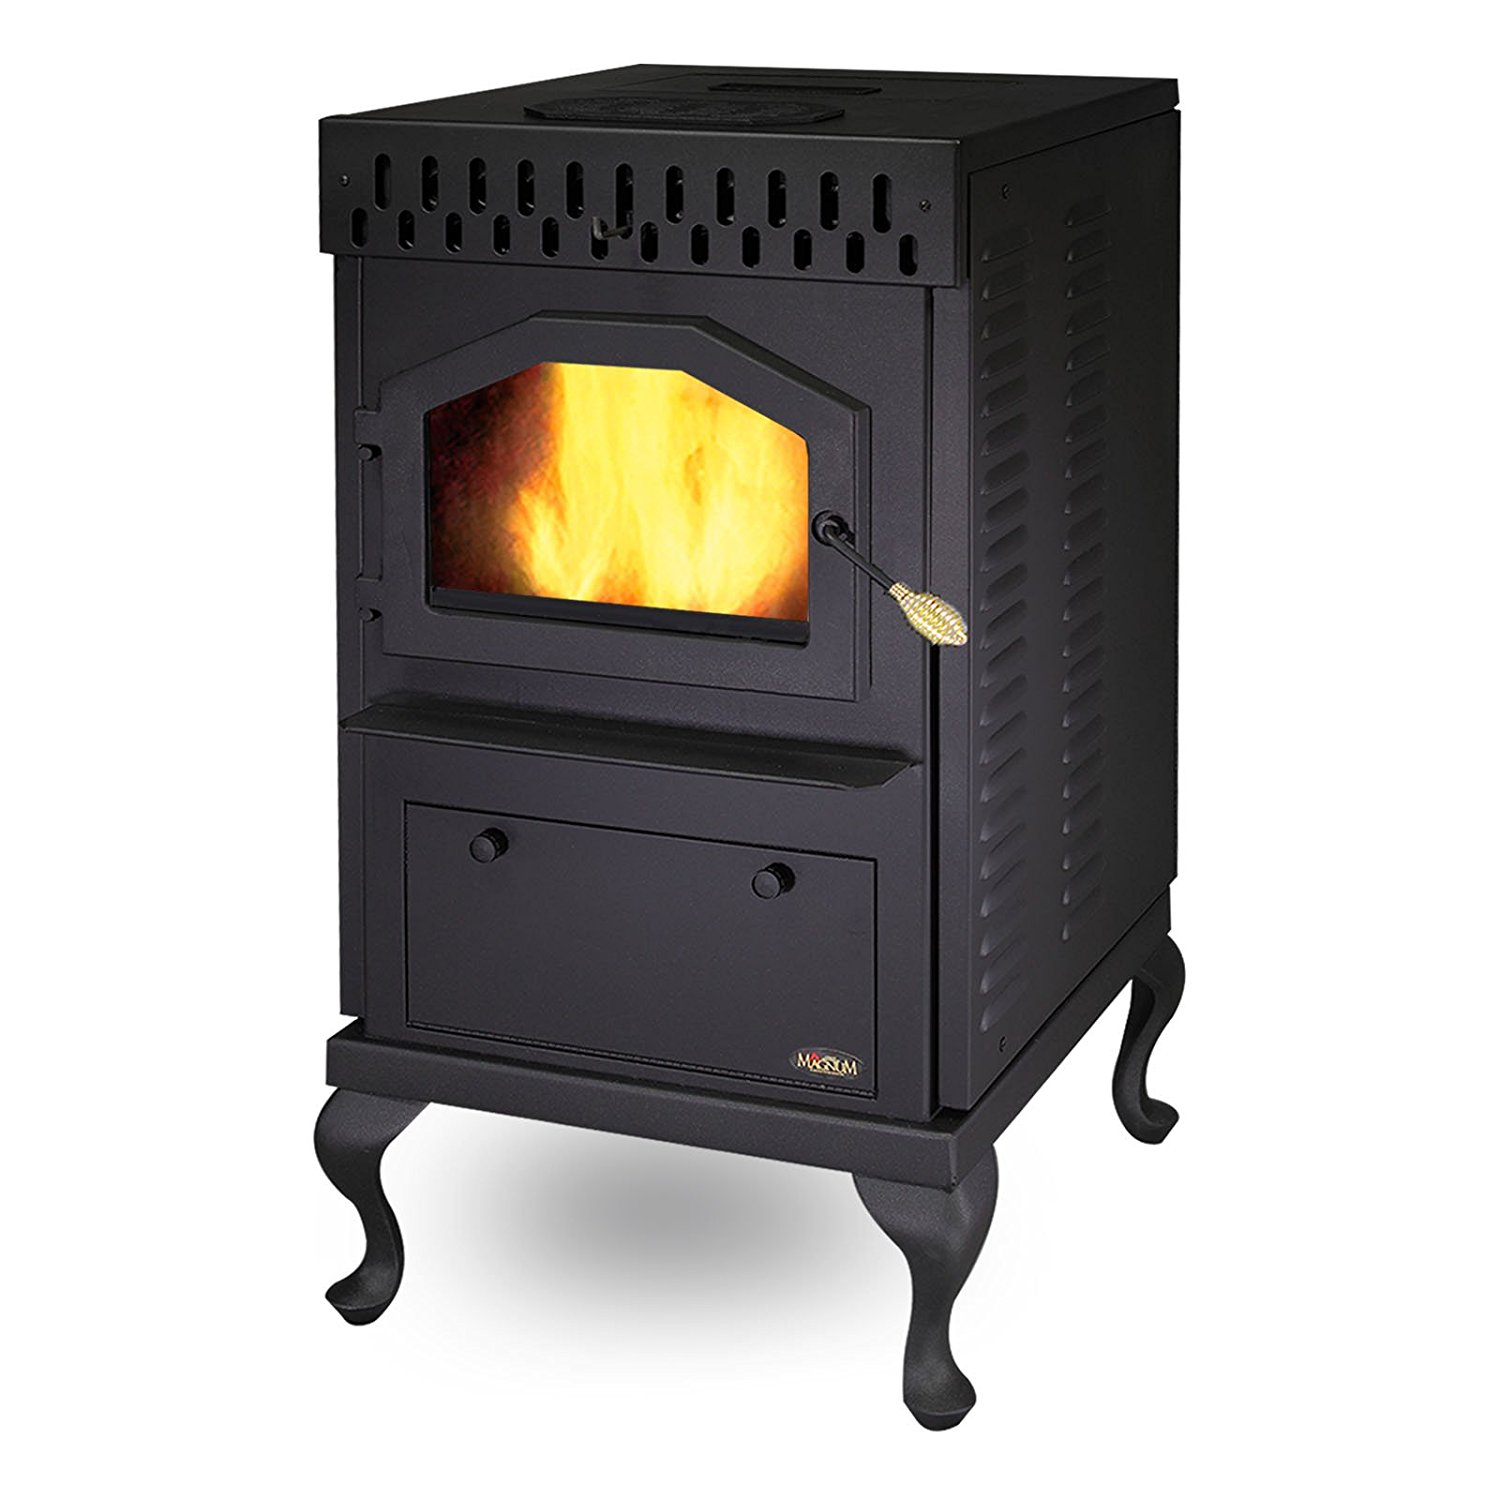 MagnuM Countryside Black Pedestal Wood Pellet Stove 32,000 BTU Hand-Built in USA